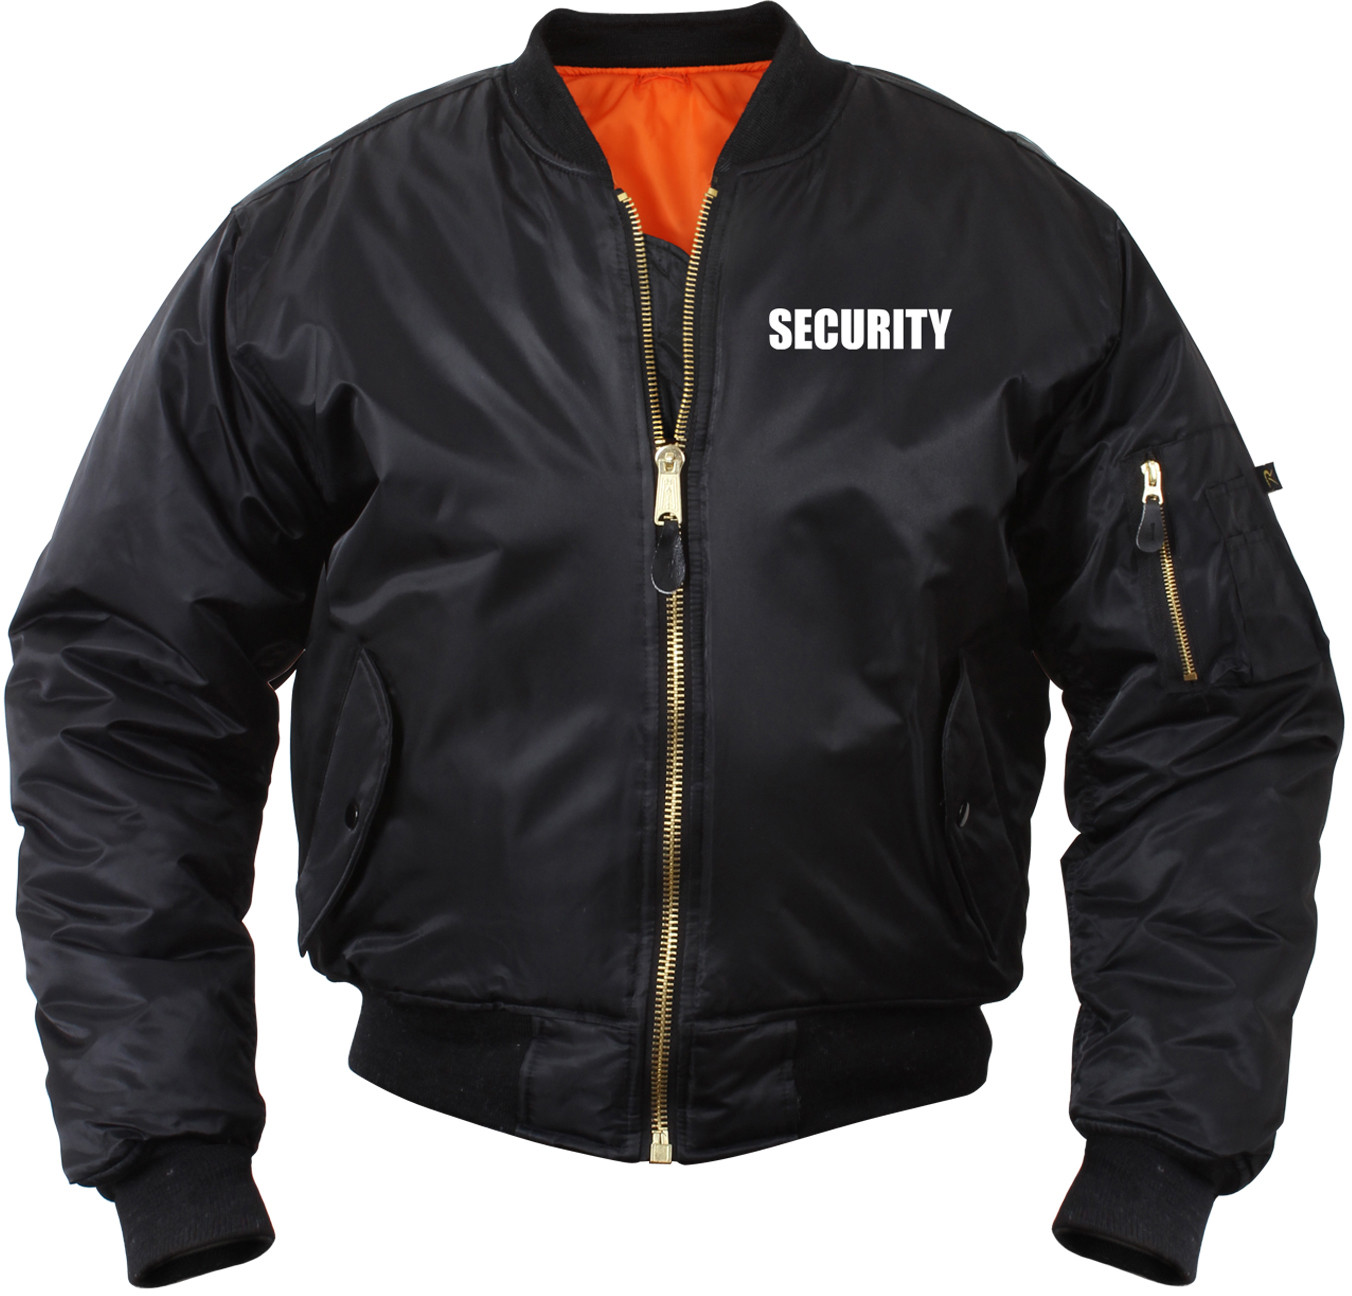 Black Law Enforcement MA-1 Tactical Reversible Security Flight Jacket 66acb9fdfdf